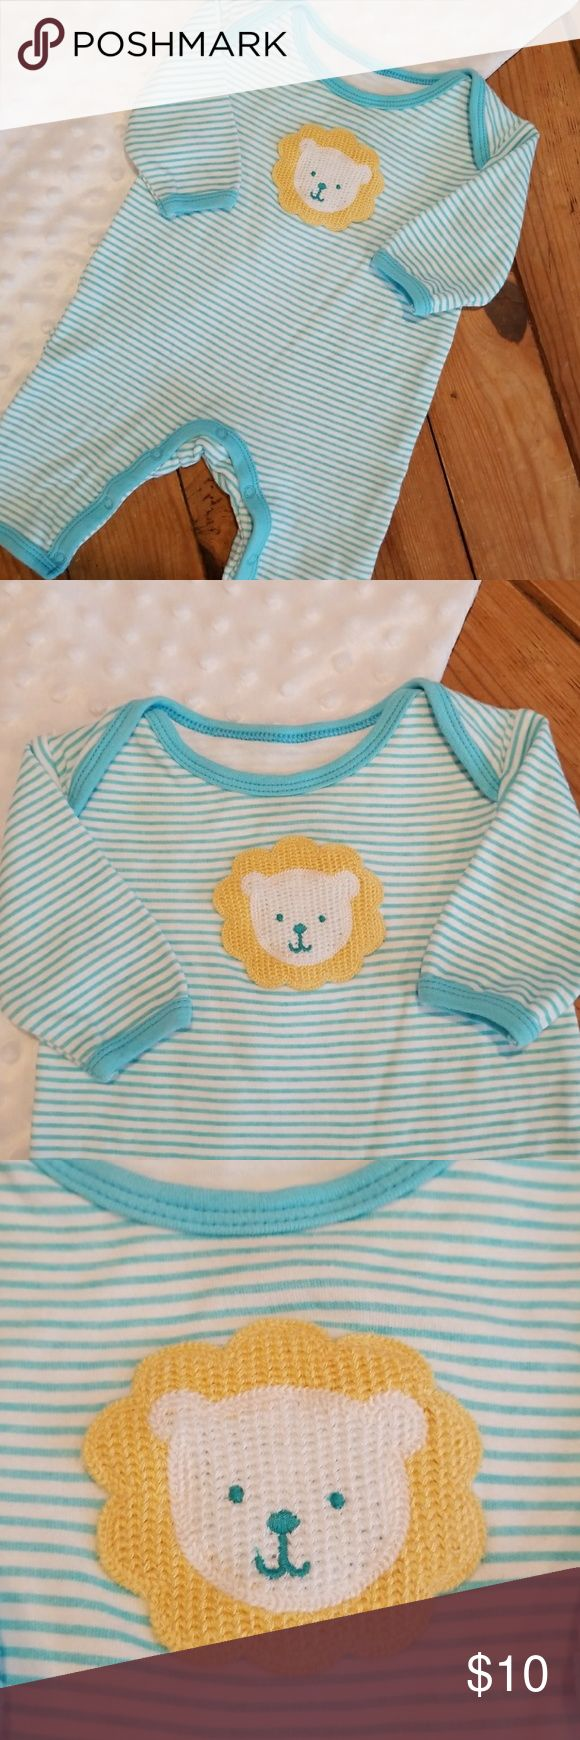 Baby one piece lion embroidery outfit Unique, cute, teal and white stripped one piece outfit with lion embroidery, 100% cotton and NWOT. Rene Rofe One Pieces Bodysuits